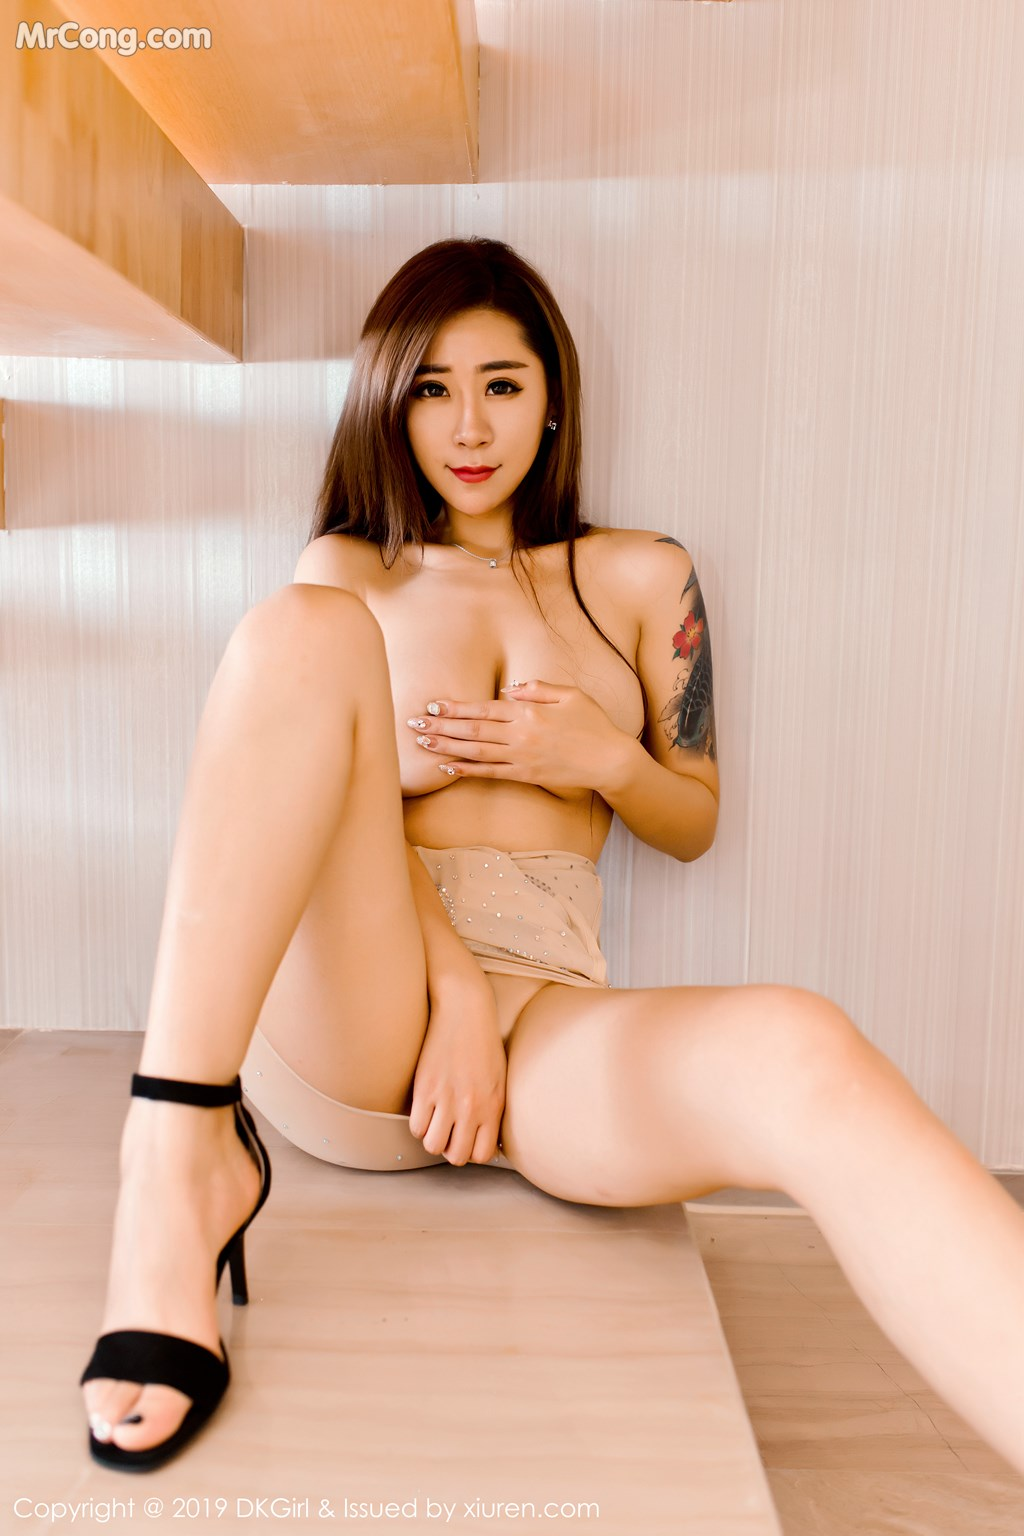 Image DKGirl-Vol.109-Cier-MrCong.com-012 in post DKGirl Vol.109: 雪儿Cier (49 ảnh)